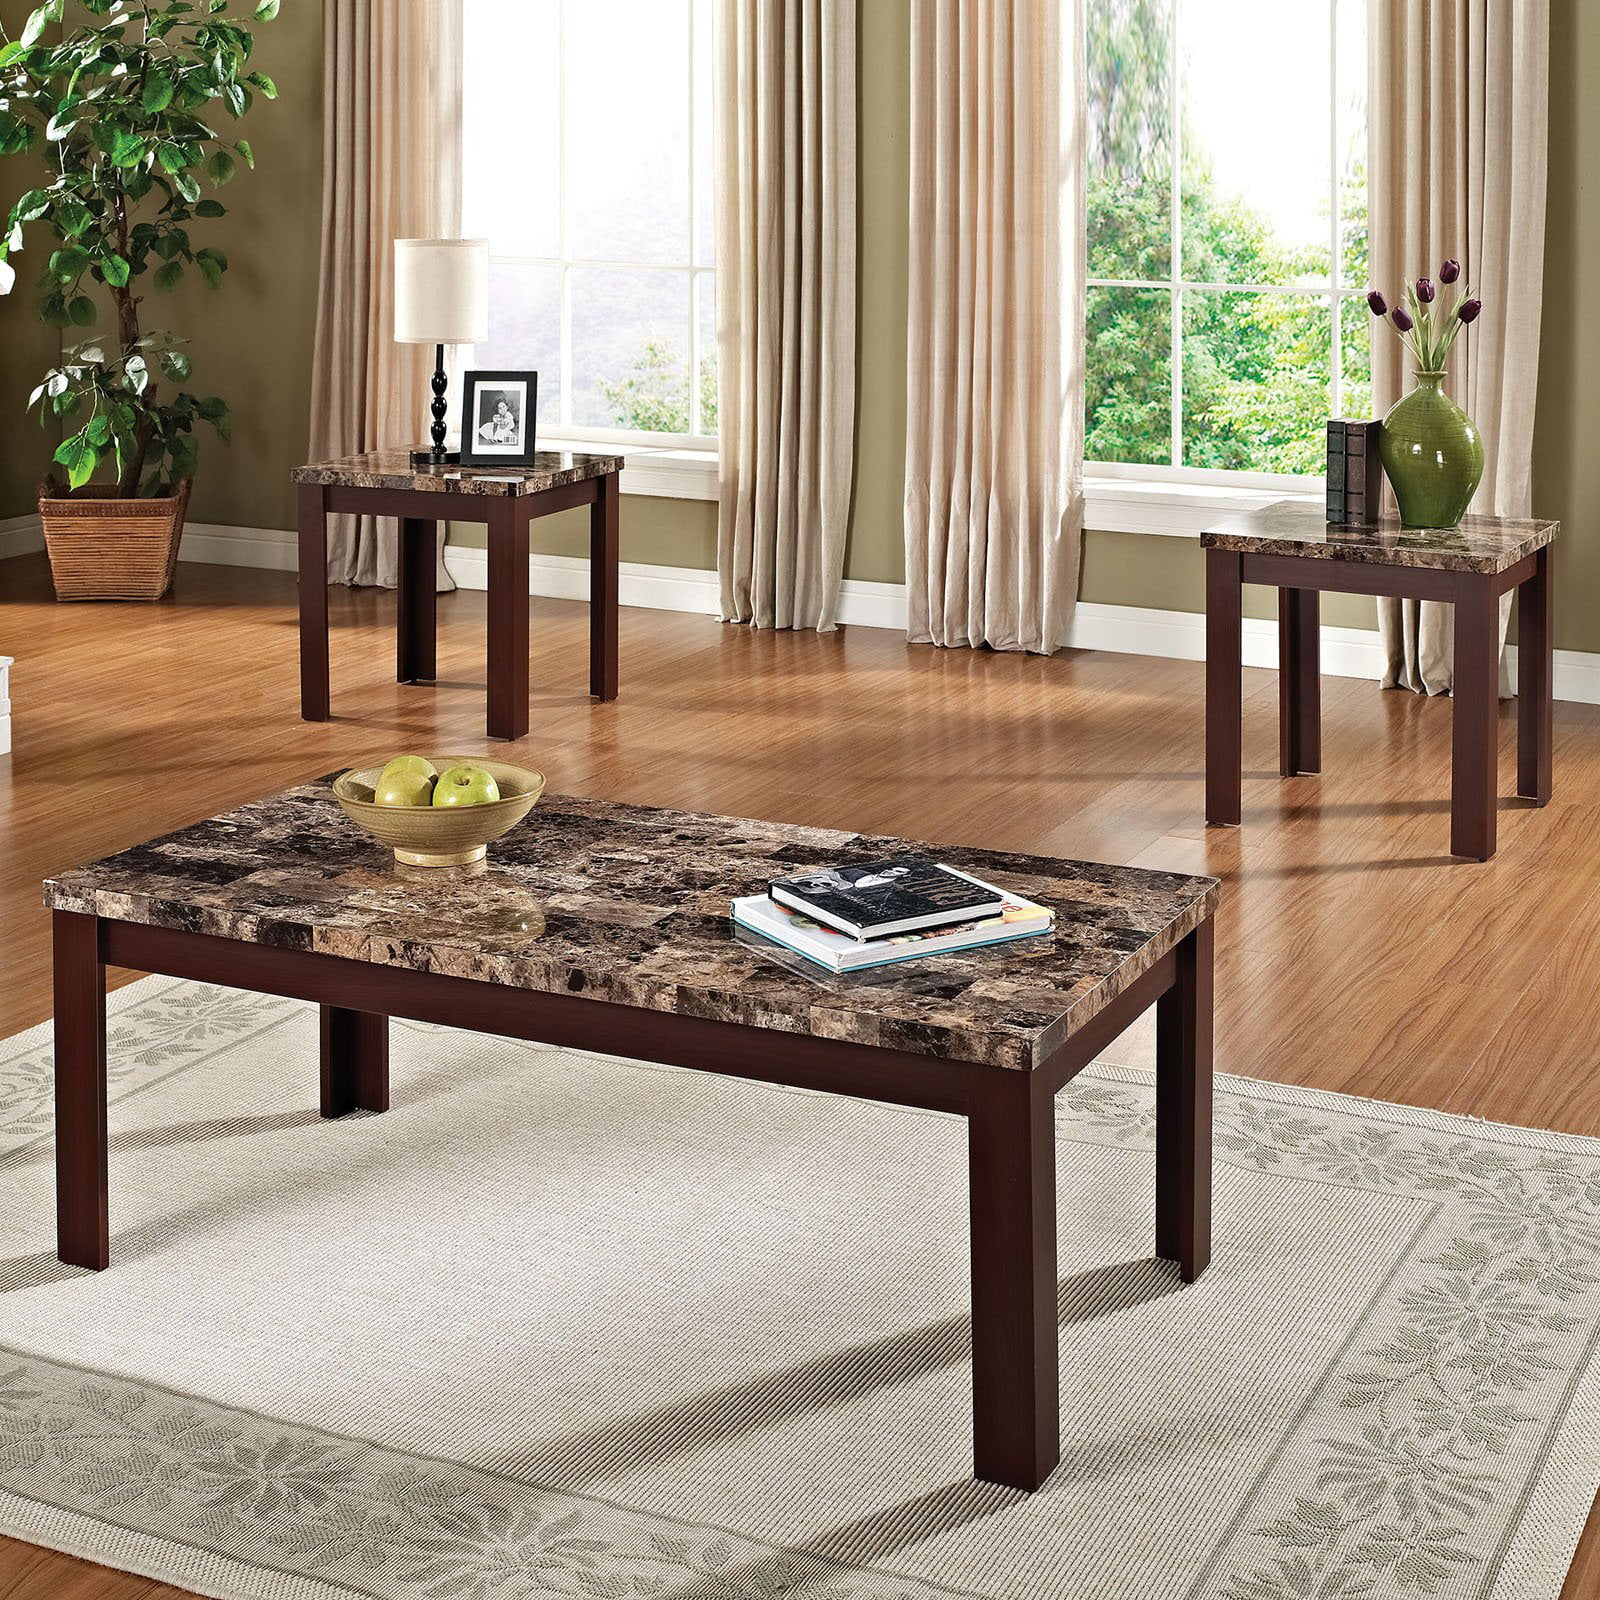 Acme 3 Piece Finely Coffee And End Table Set Dark Brown Faux Marble Black